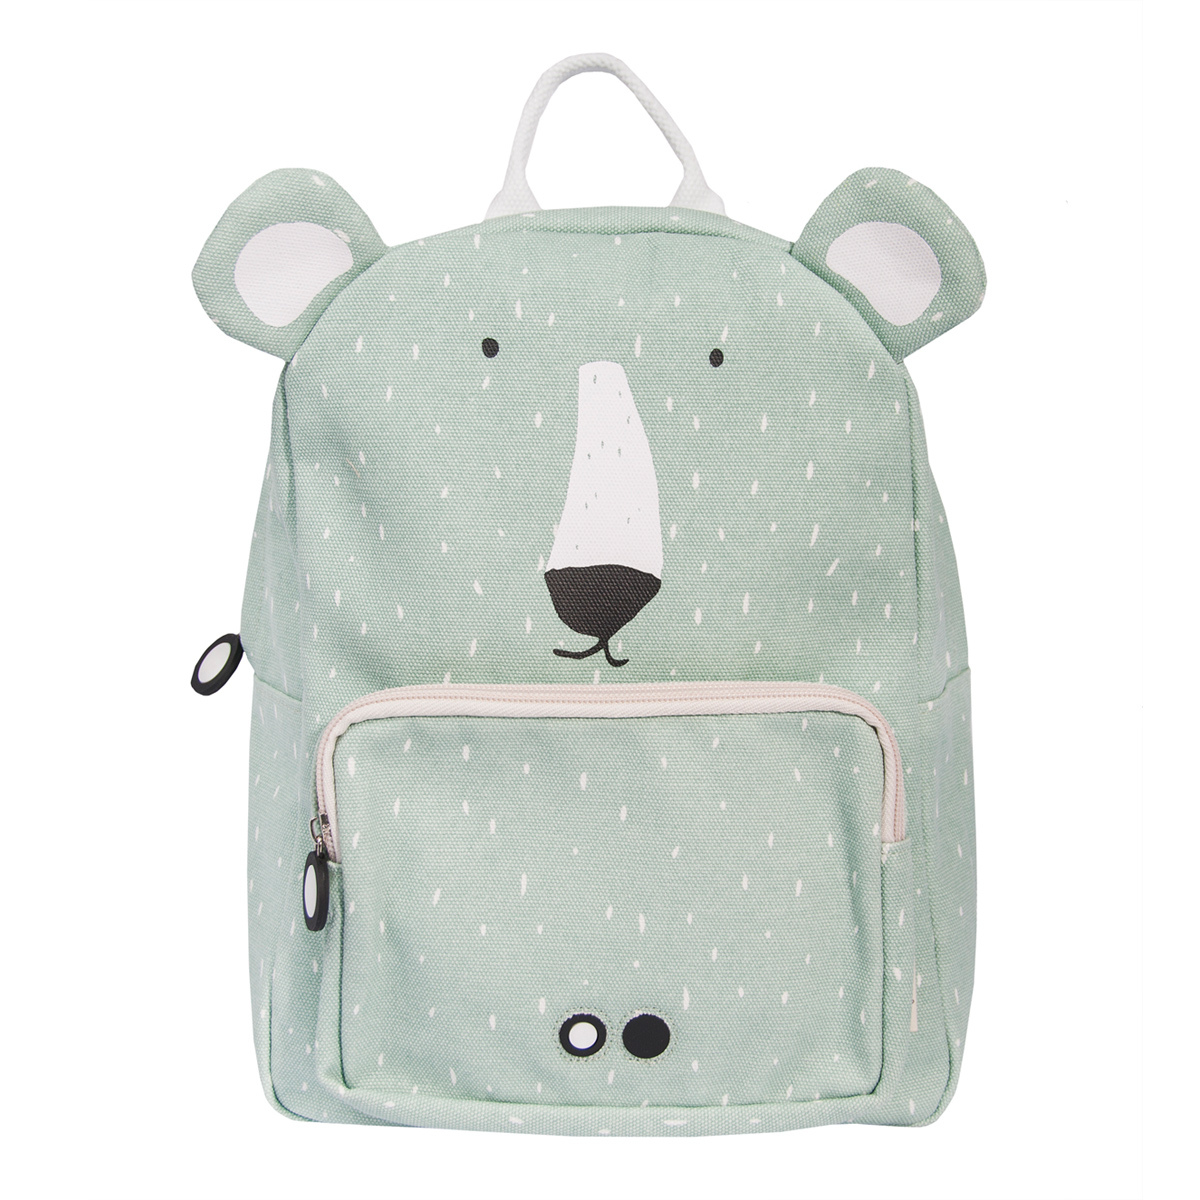 Bagagerie enfant Sac à Dos - Mr. Polar Bear Sac à Dos - Mr. Polar Bear